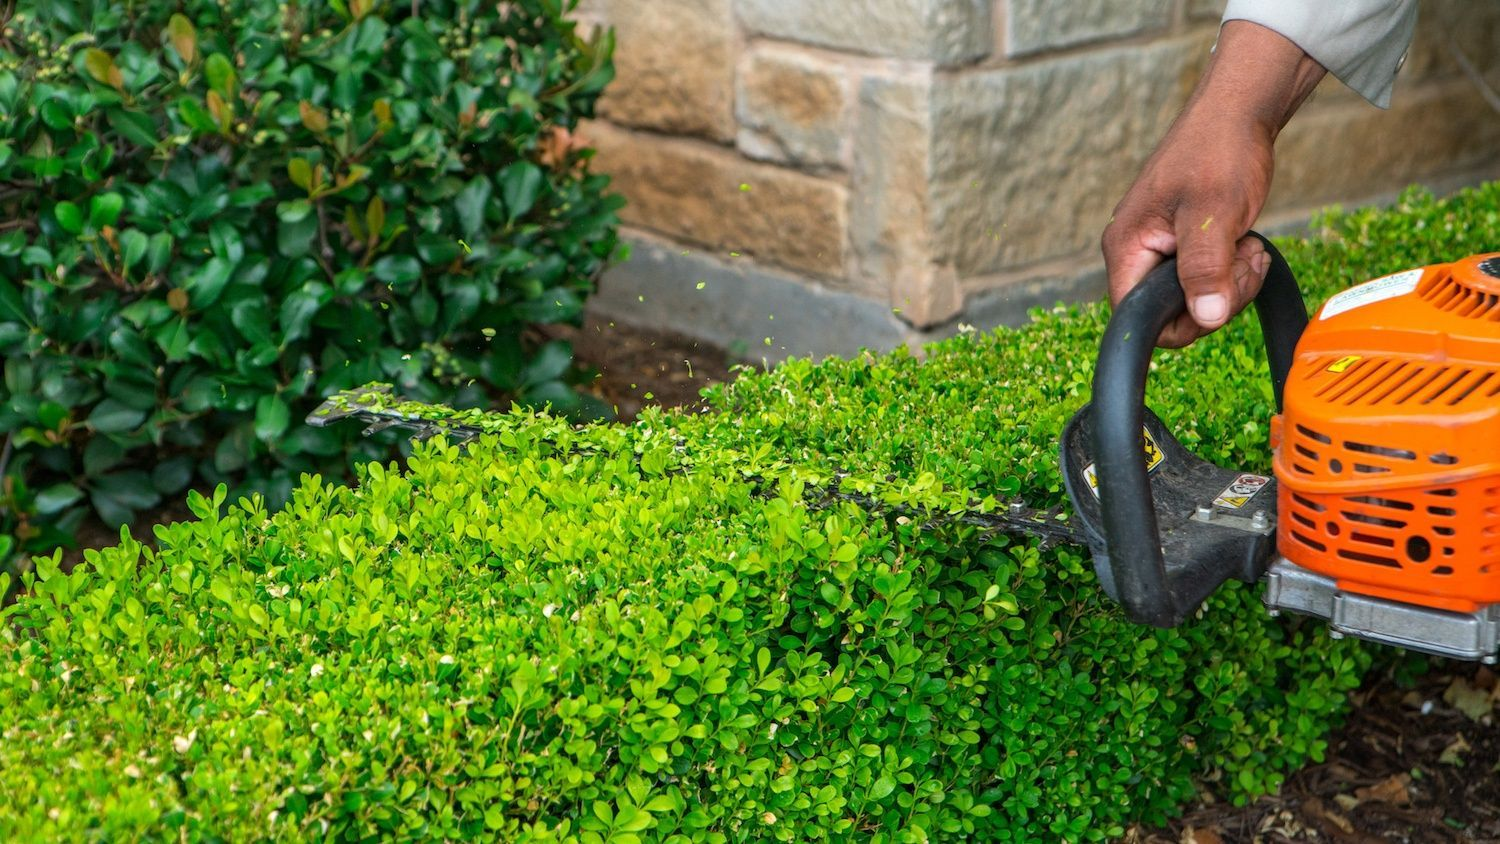 shrubs being trimmed by landscape maintenance professional